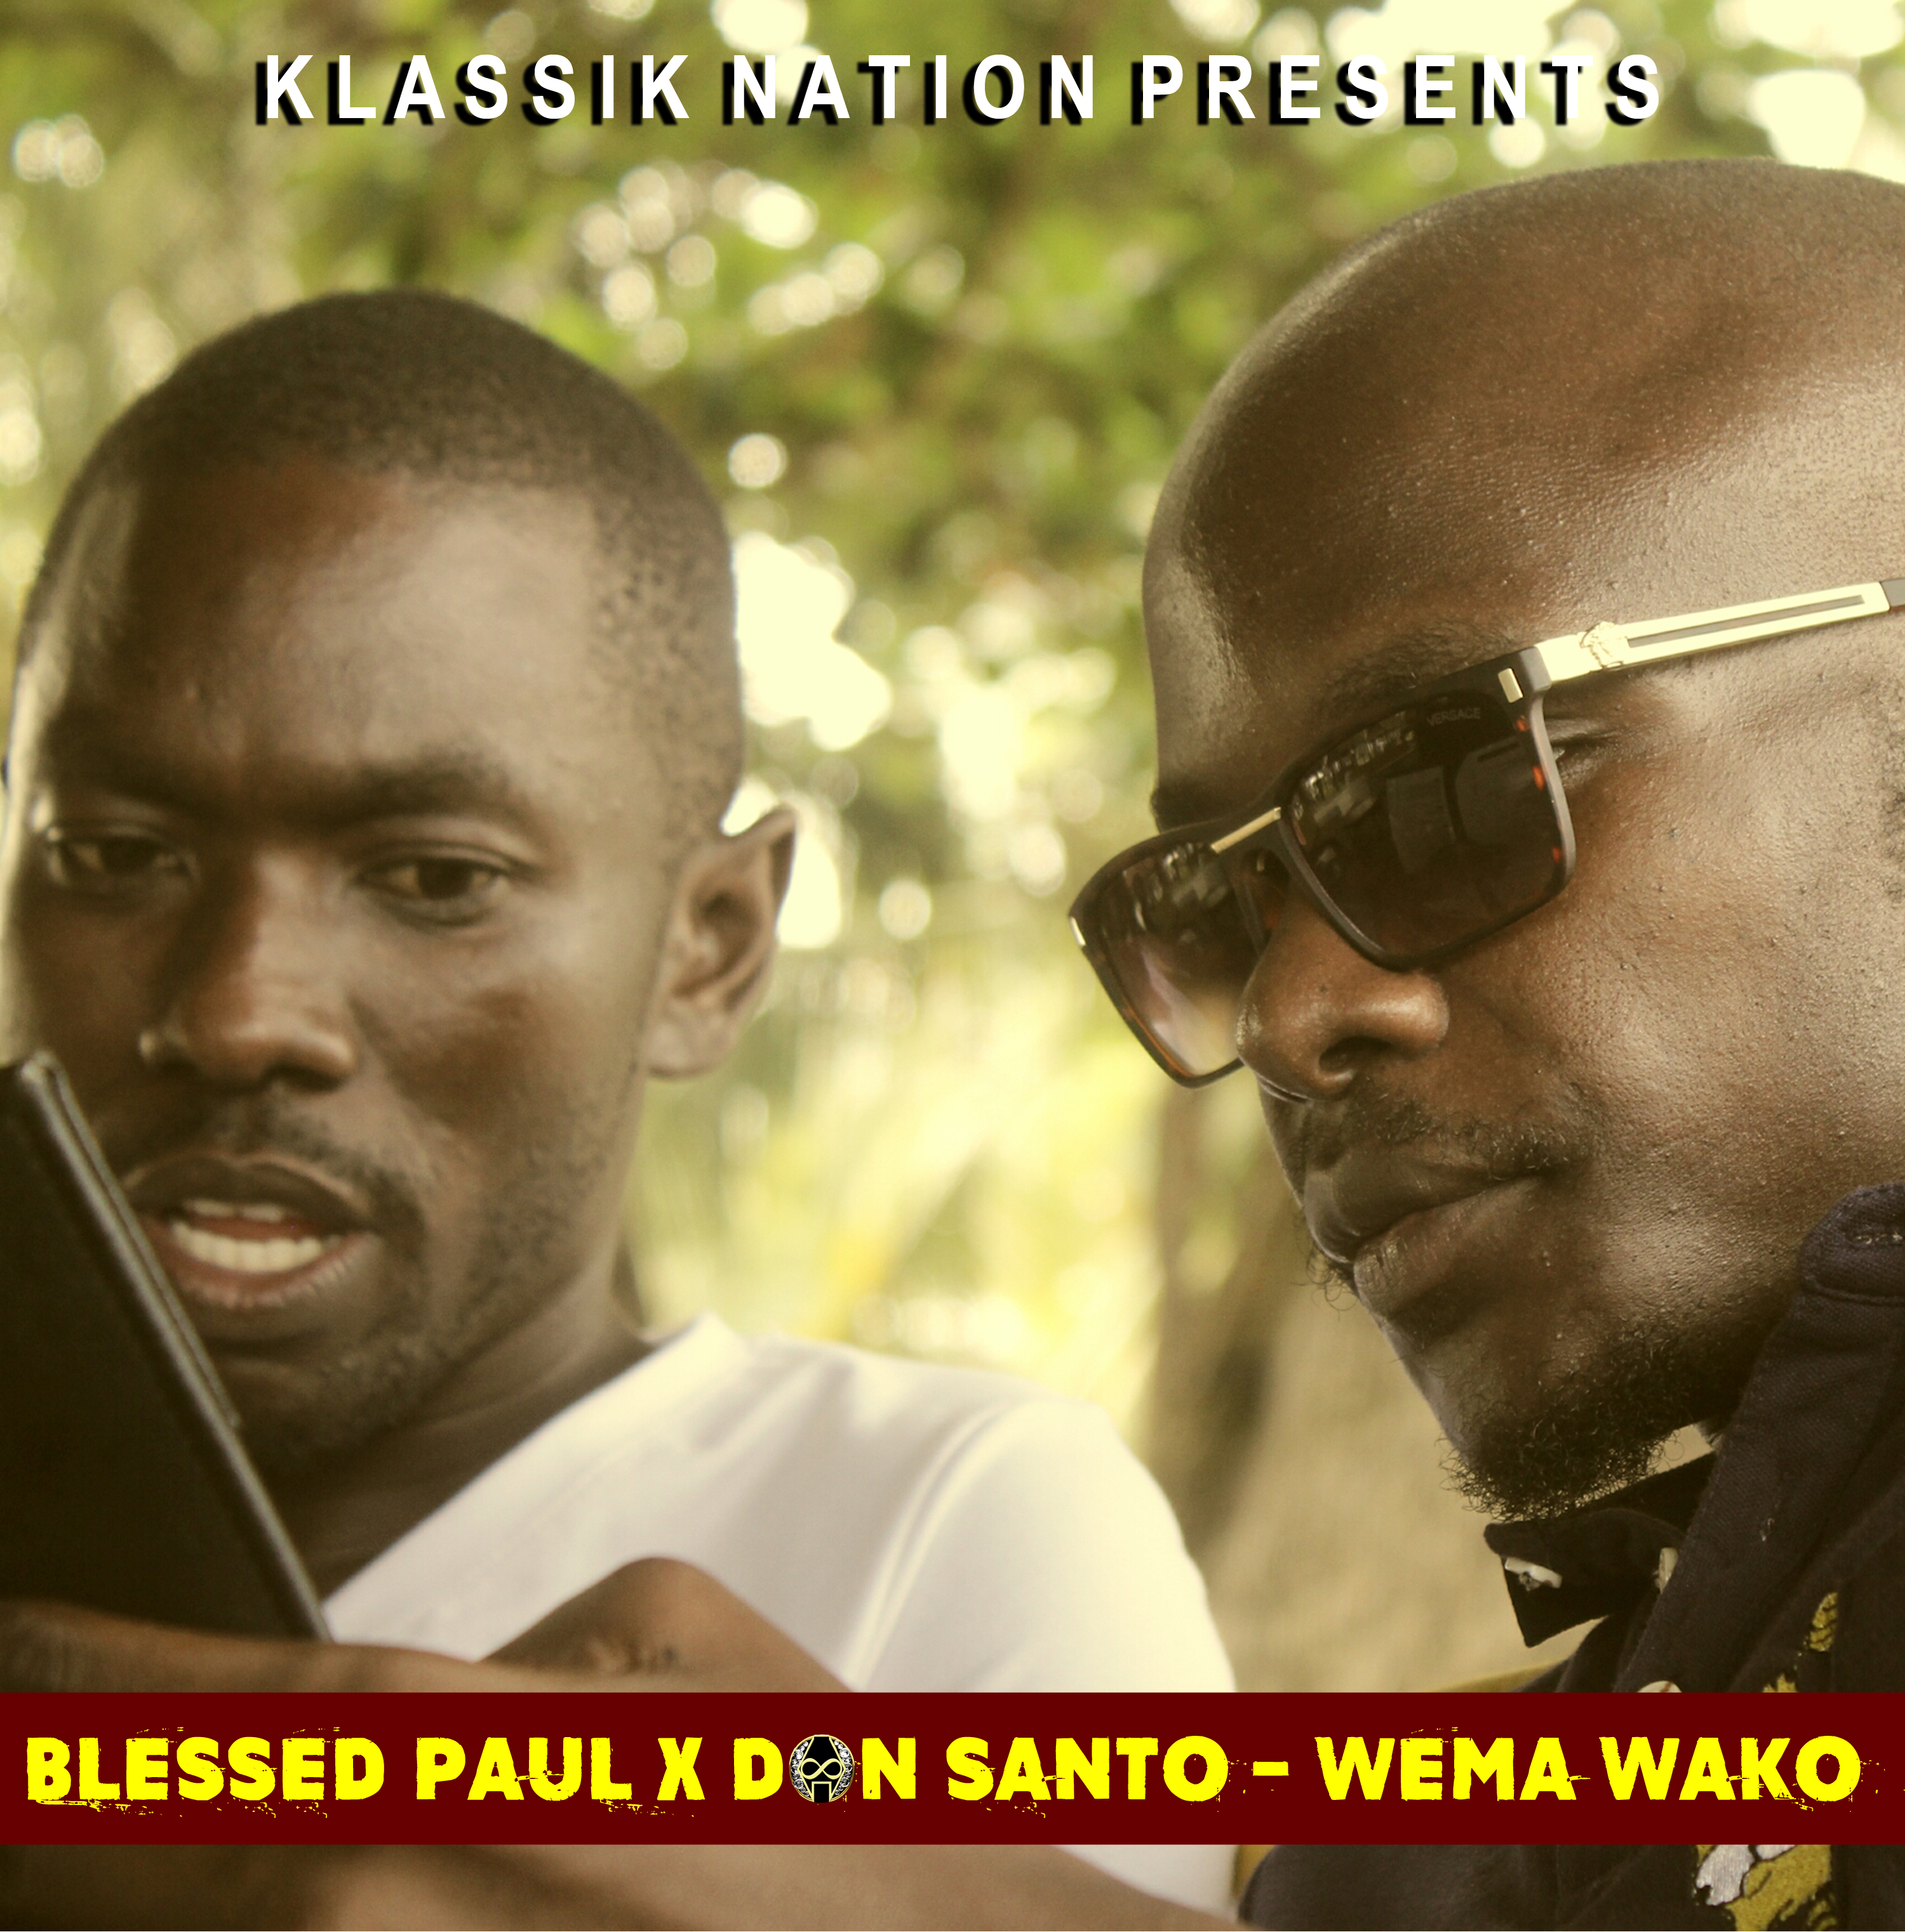 Blessed Paul x DON SANTO